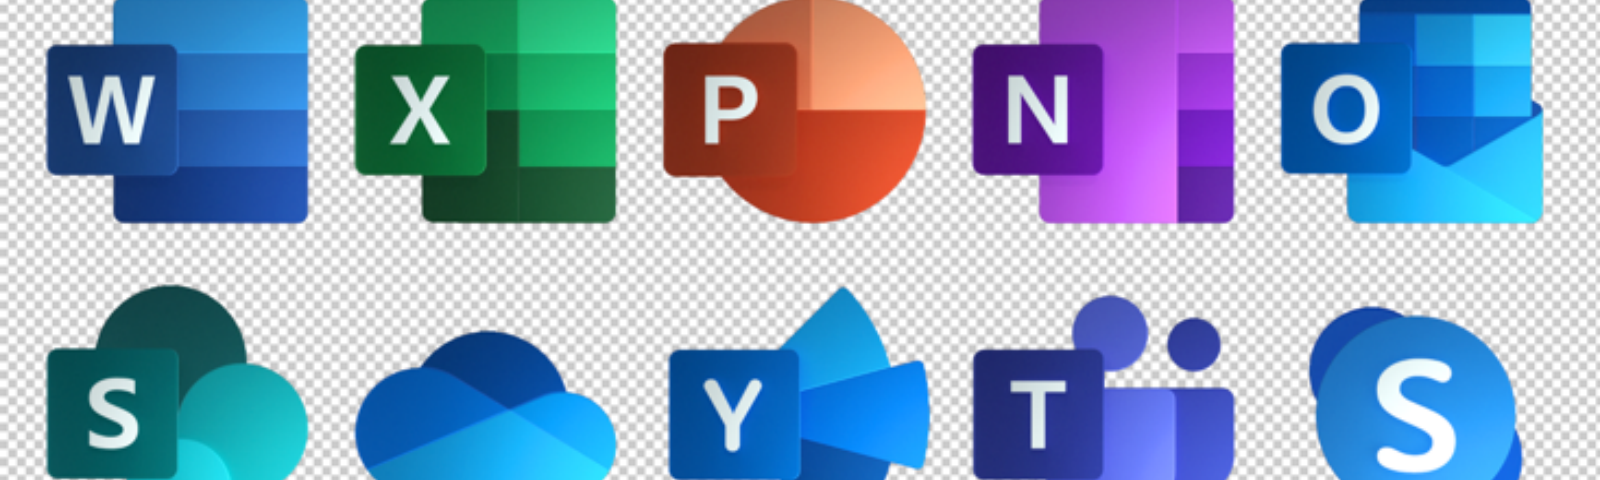 Need Large Transparent Png Versions Of The New Office 365 Icons